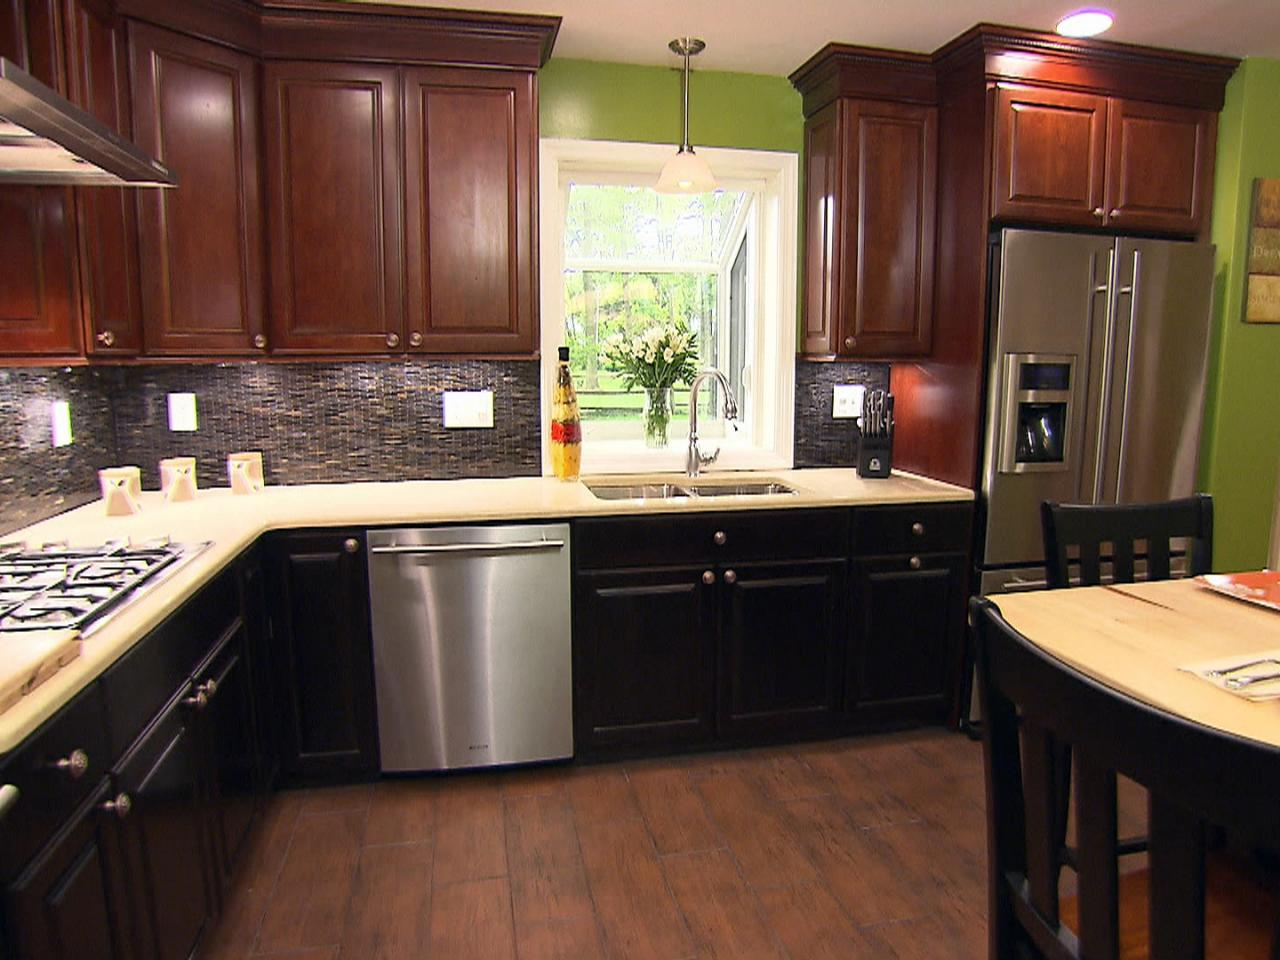 Related To Kitchen Kitchen Design